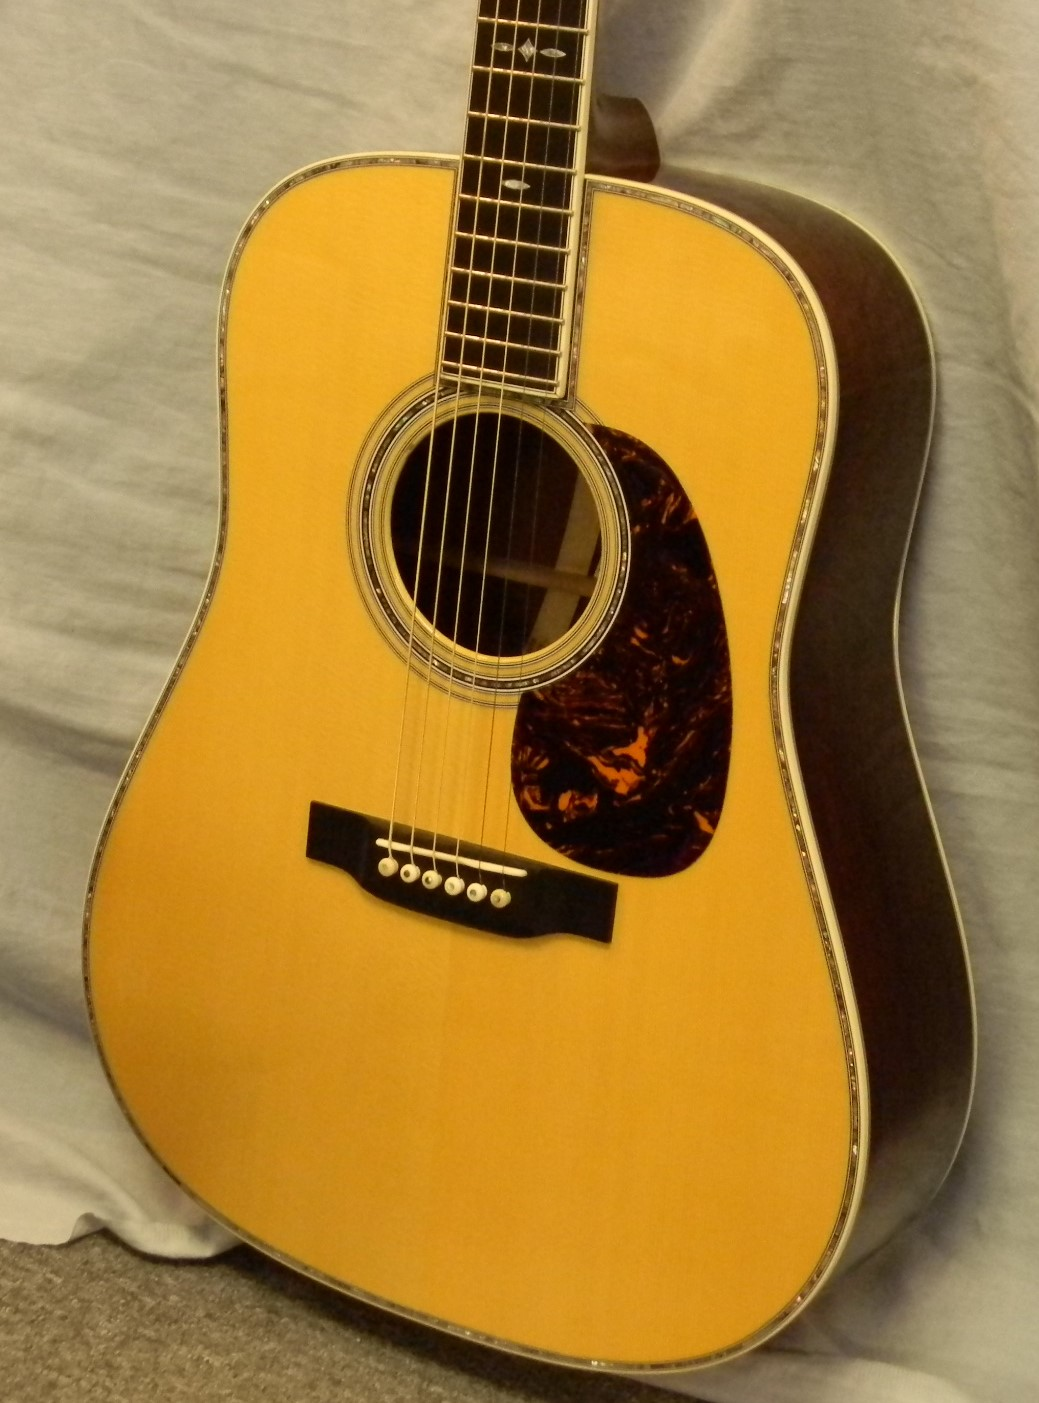 Martin SS D35 13. # 18 of 30 made in 2013. Near mint condition made of Adirondack spruce and Madagascar rosewood with cocobolo wave shaped center wedge. 42 style appointments and hide glue construction. List: $9,999.00 SALE: $6,500.00